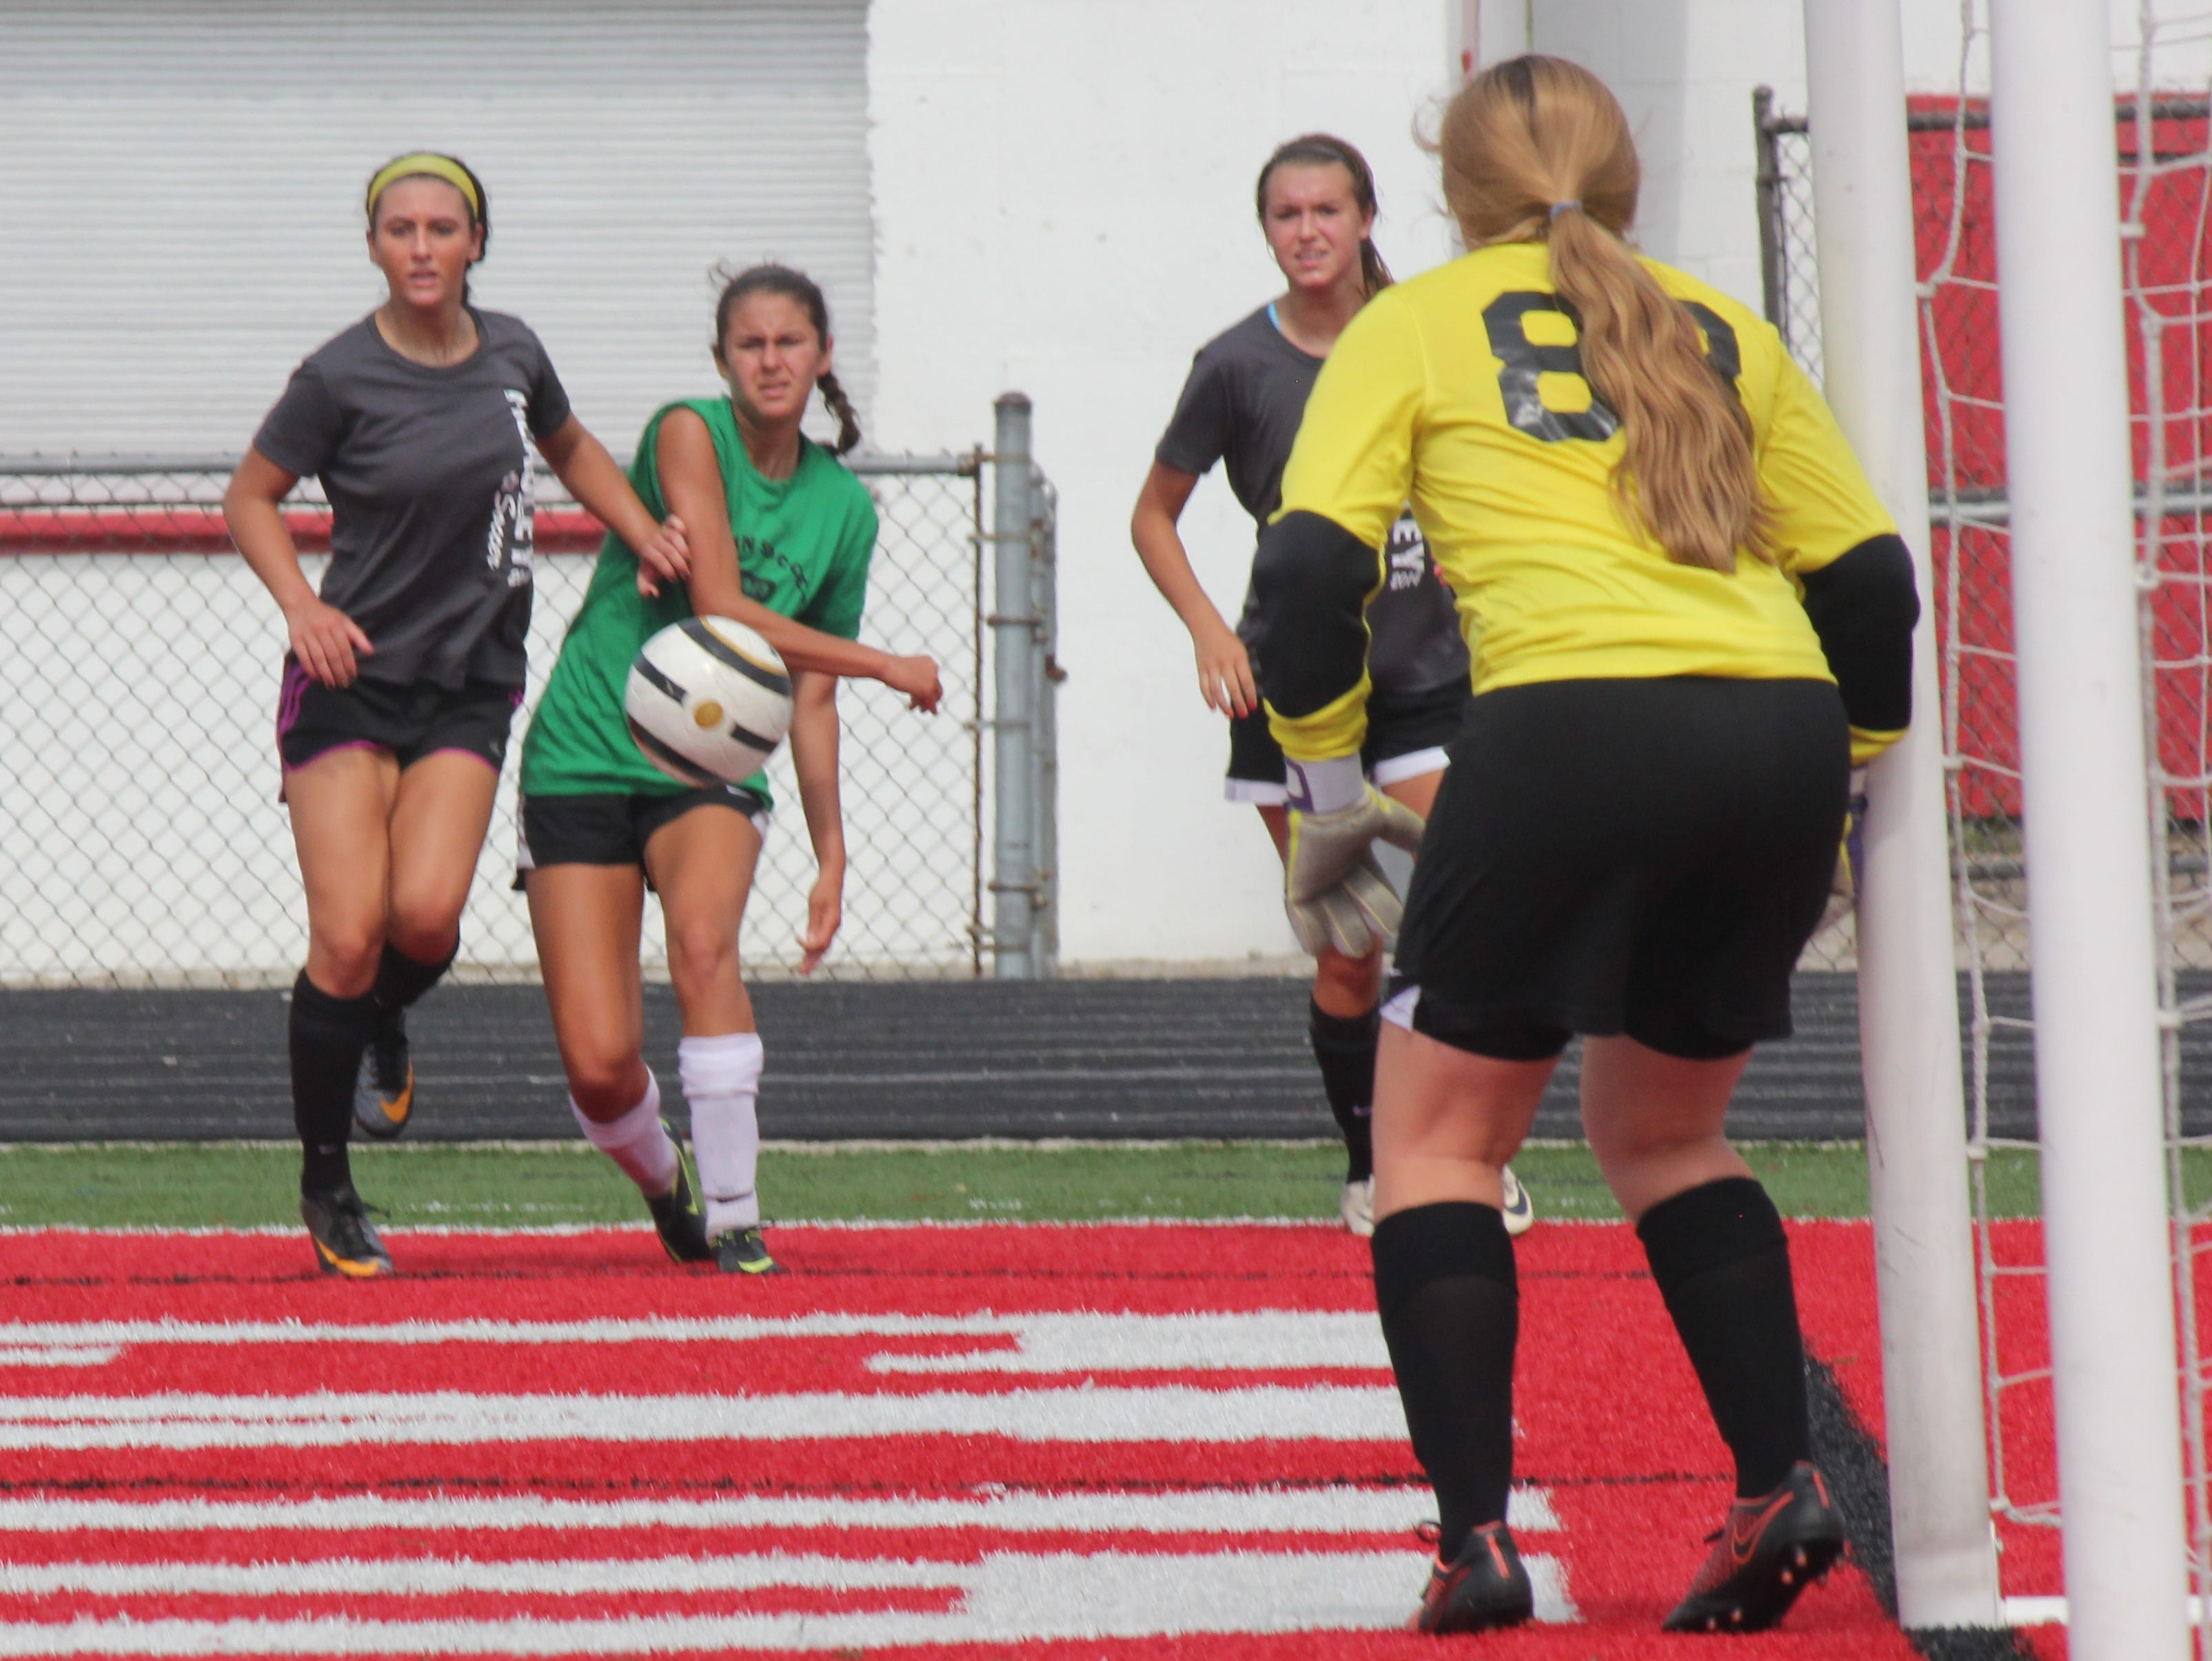 Badin's Malia Berkely takes a shot against McAuley's keeper in their game July 12 at Fairfield.